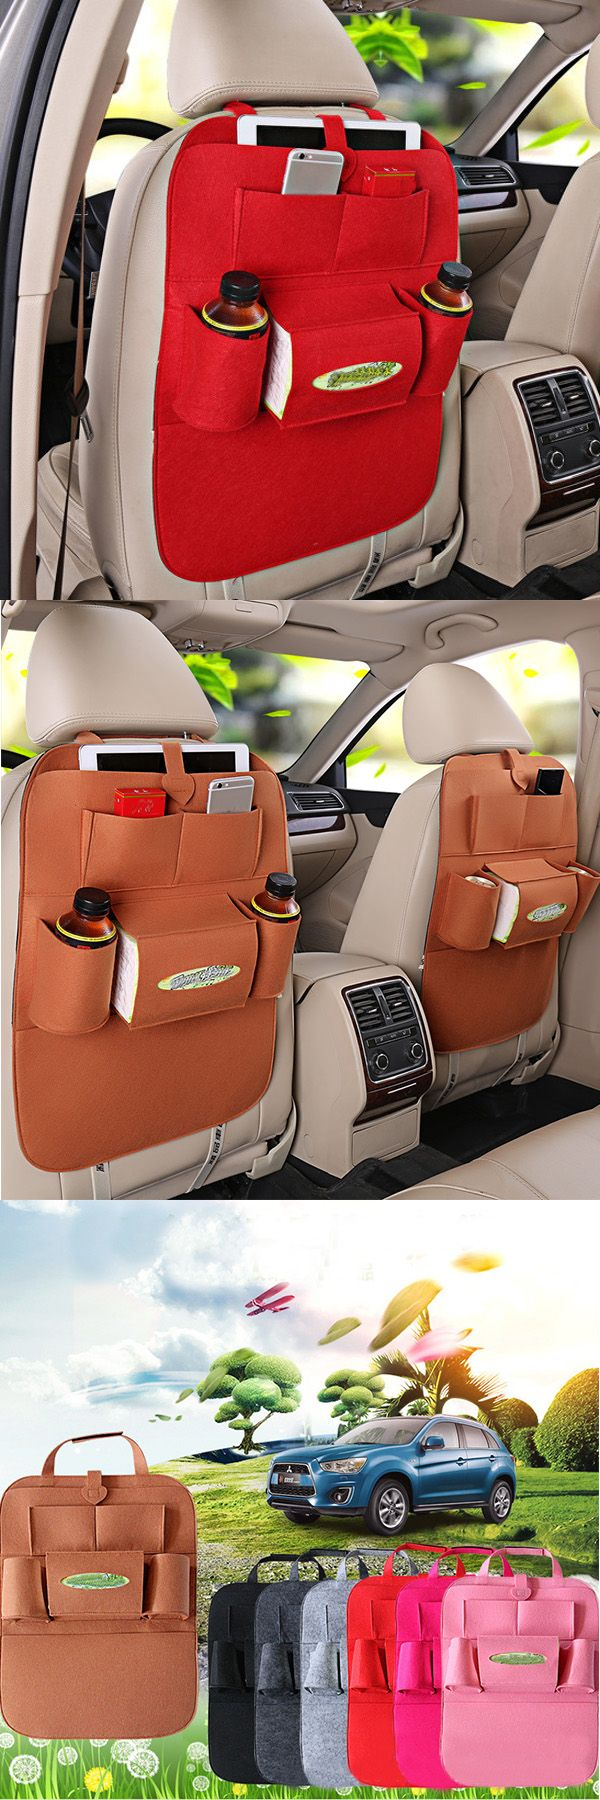 US$6.99 + Free shipping. Auto car seat storage bag hanger, car seat cover organizer, multifunction vehicle storage bag, car storage bag. Material: Felt.